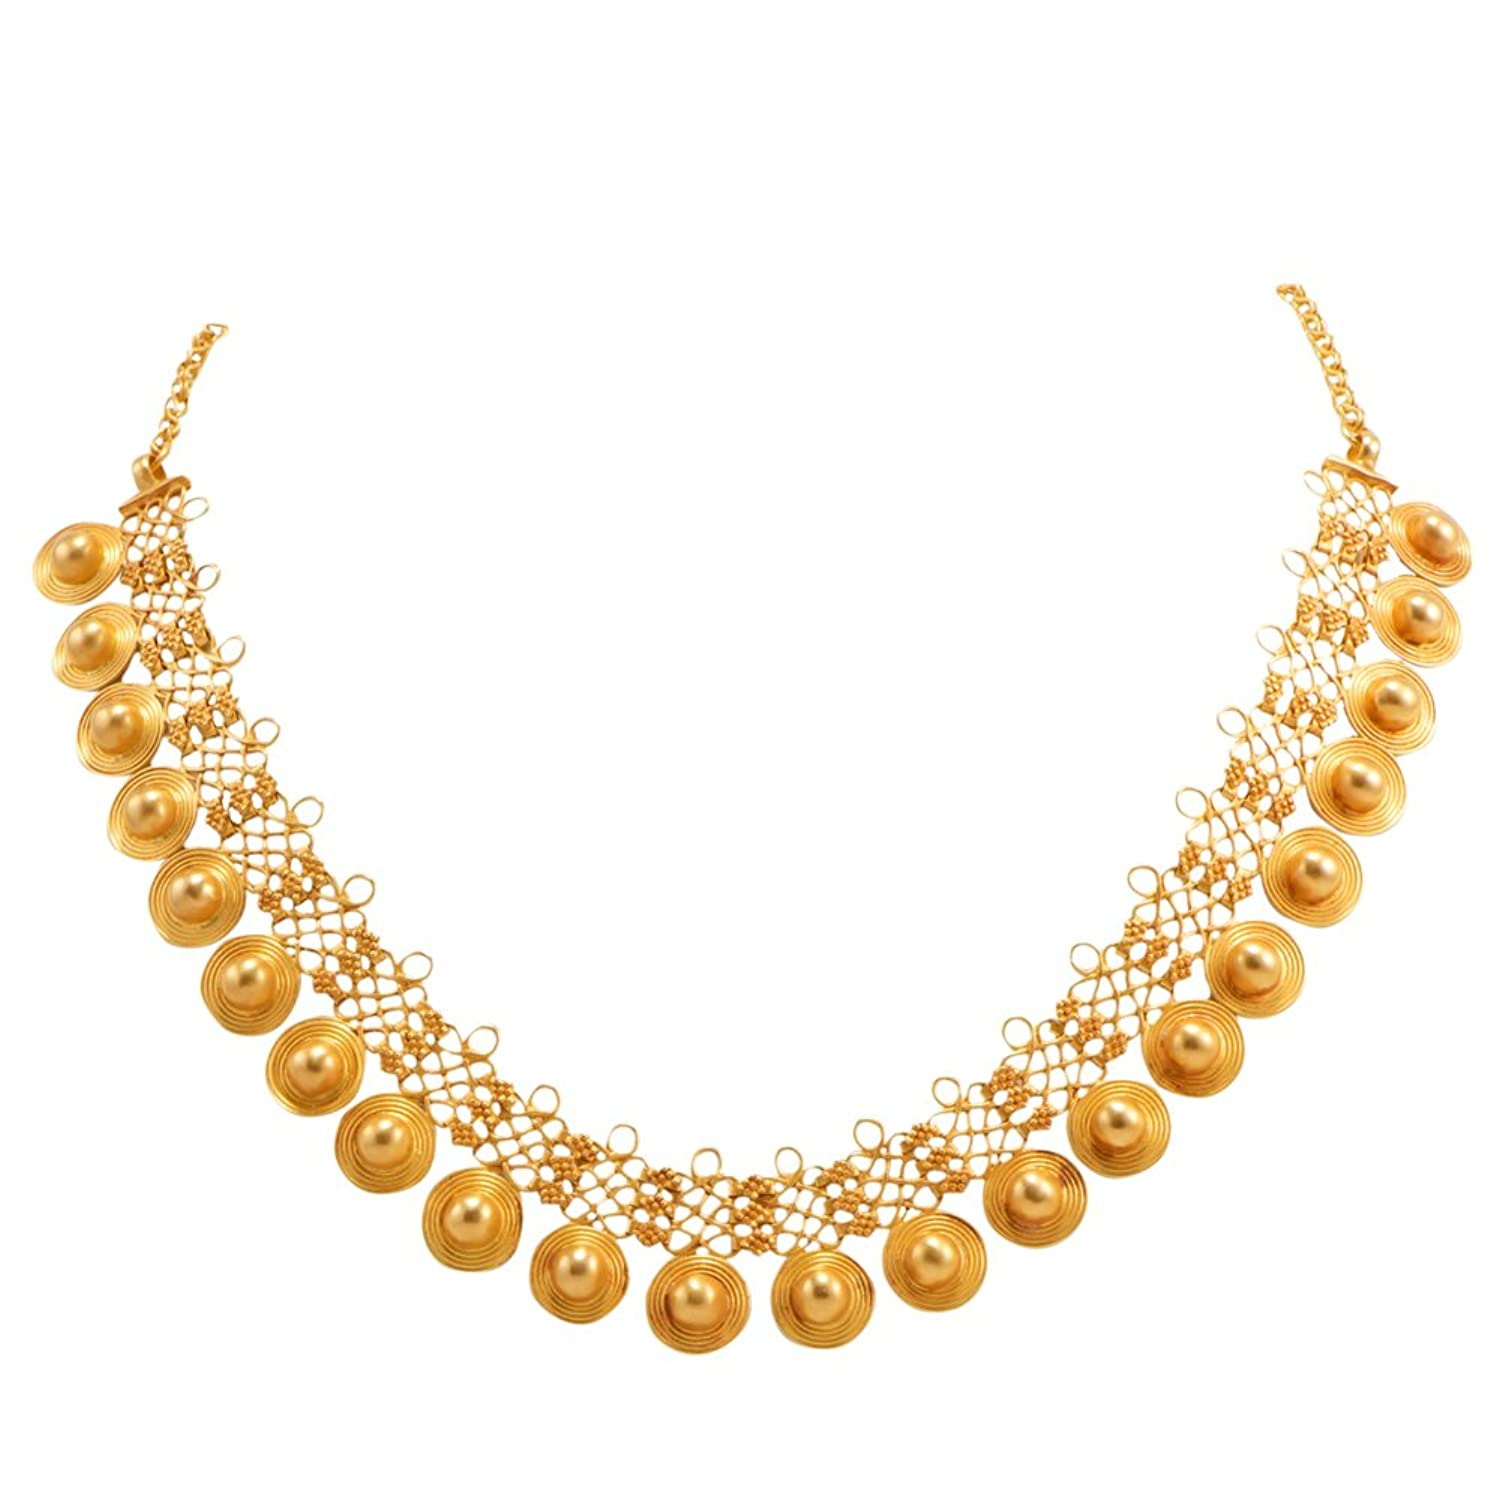 anitha light necklace weight facebook home id anithagoldjewellery media gold jewellery